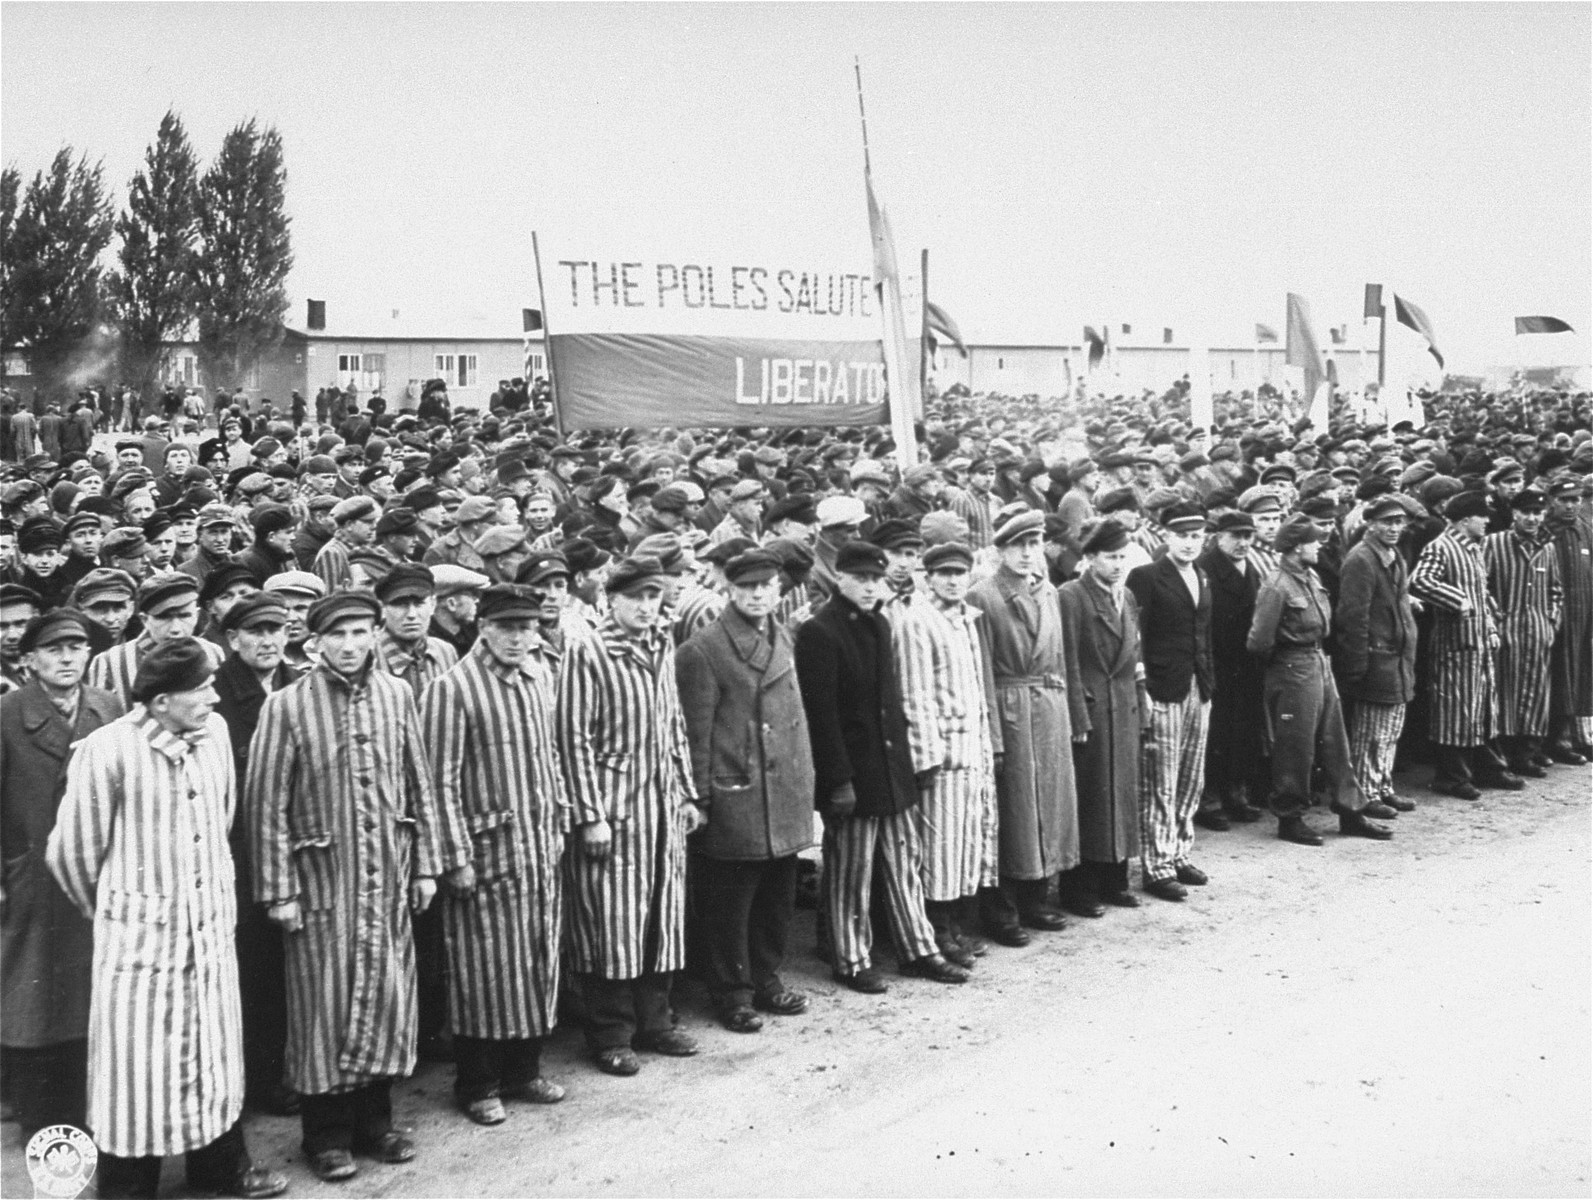 Survivors gather to salute the Allies and remember comrades who perished in Dachau.